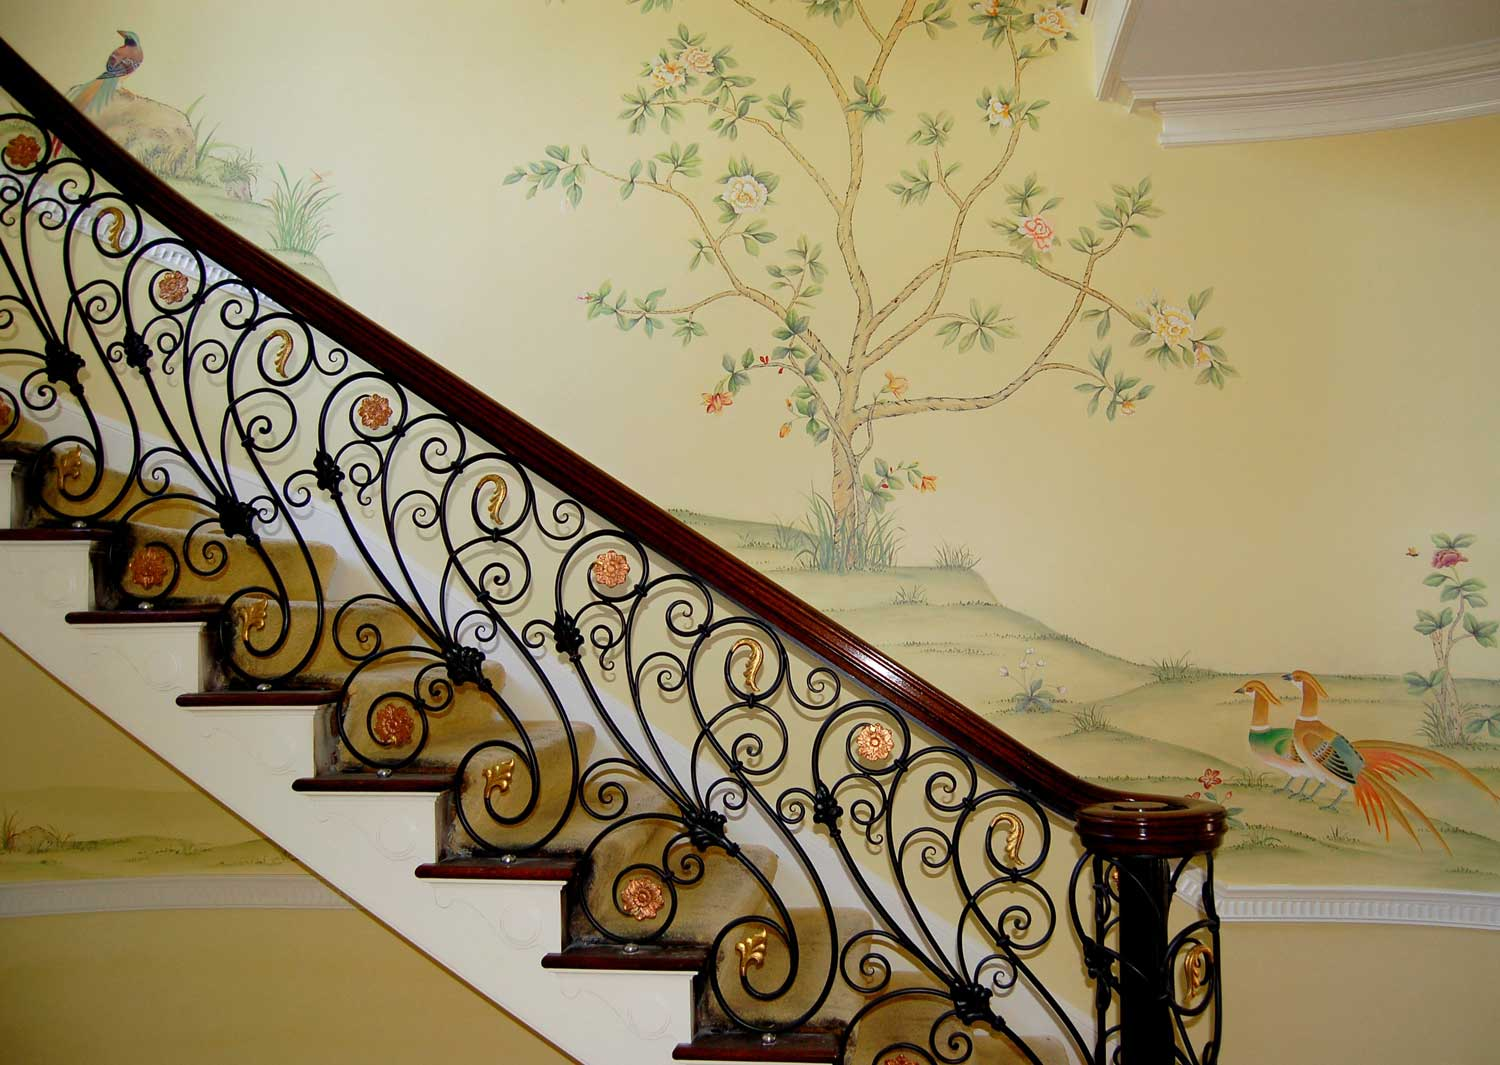 Stairway Area - Chinoiserie style mural